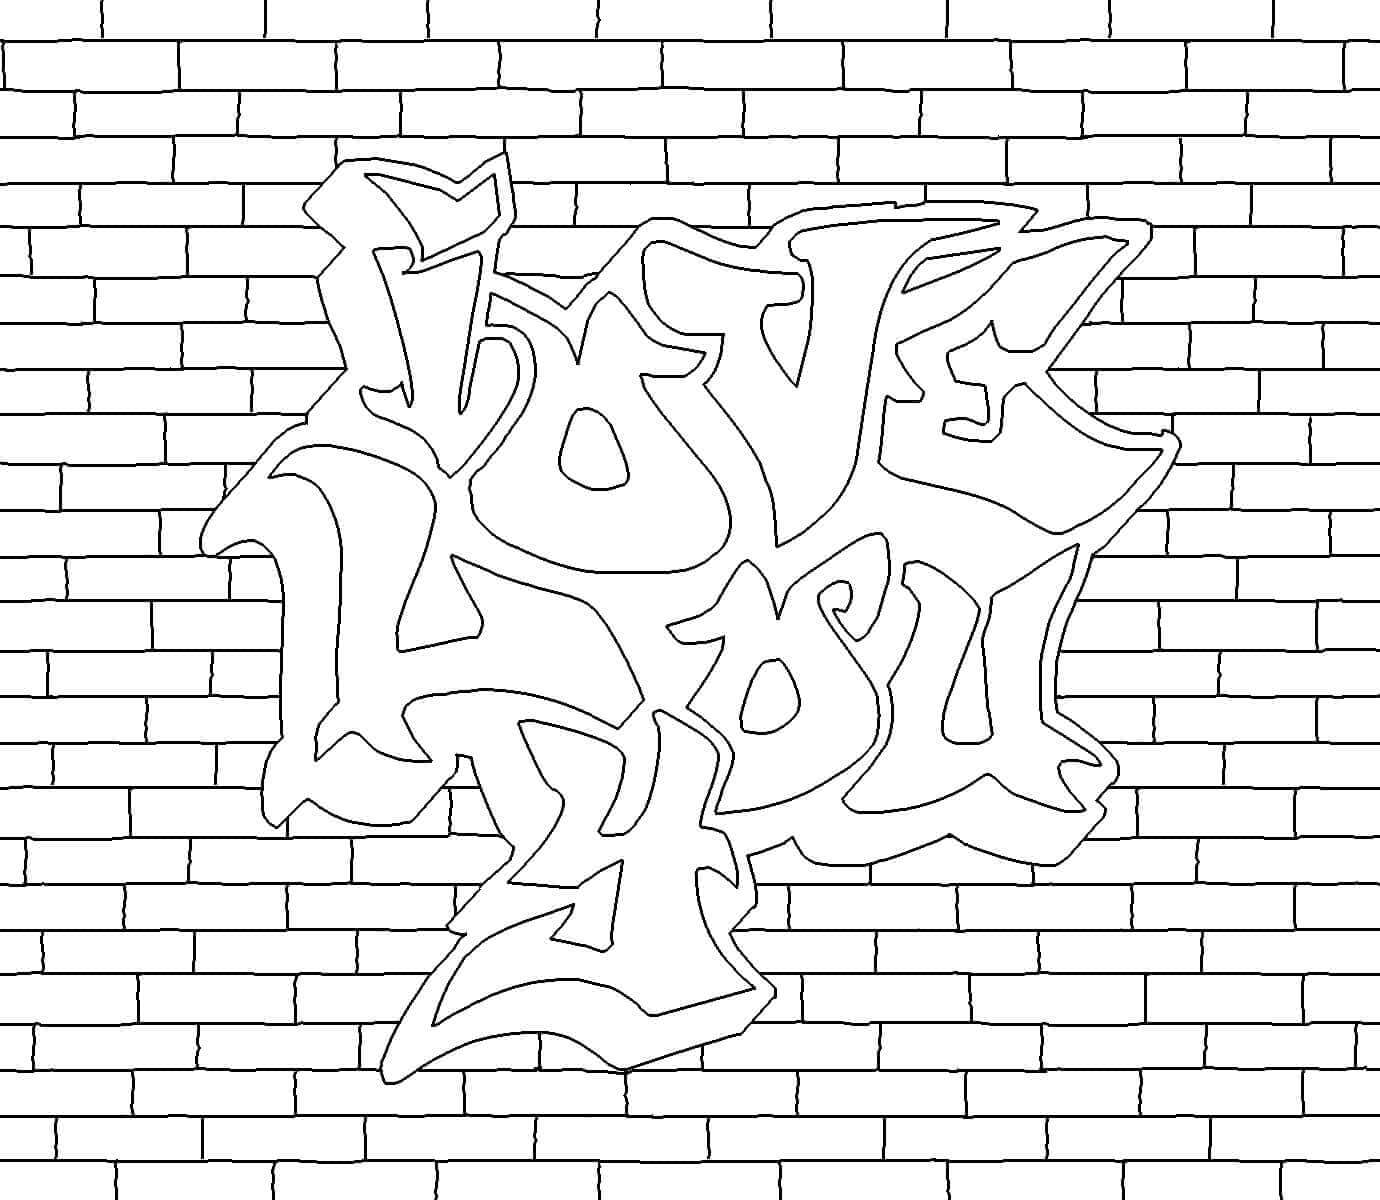 Love Graffiti colouring page